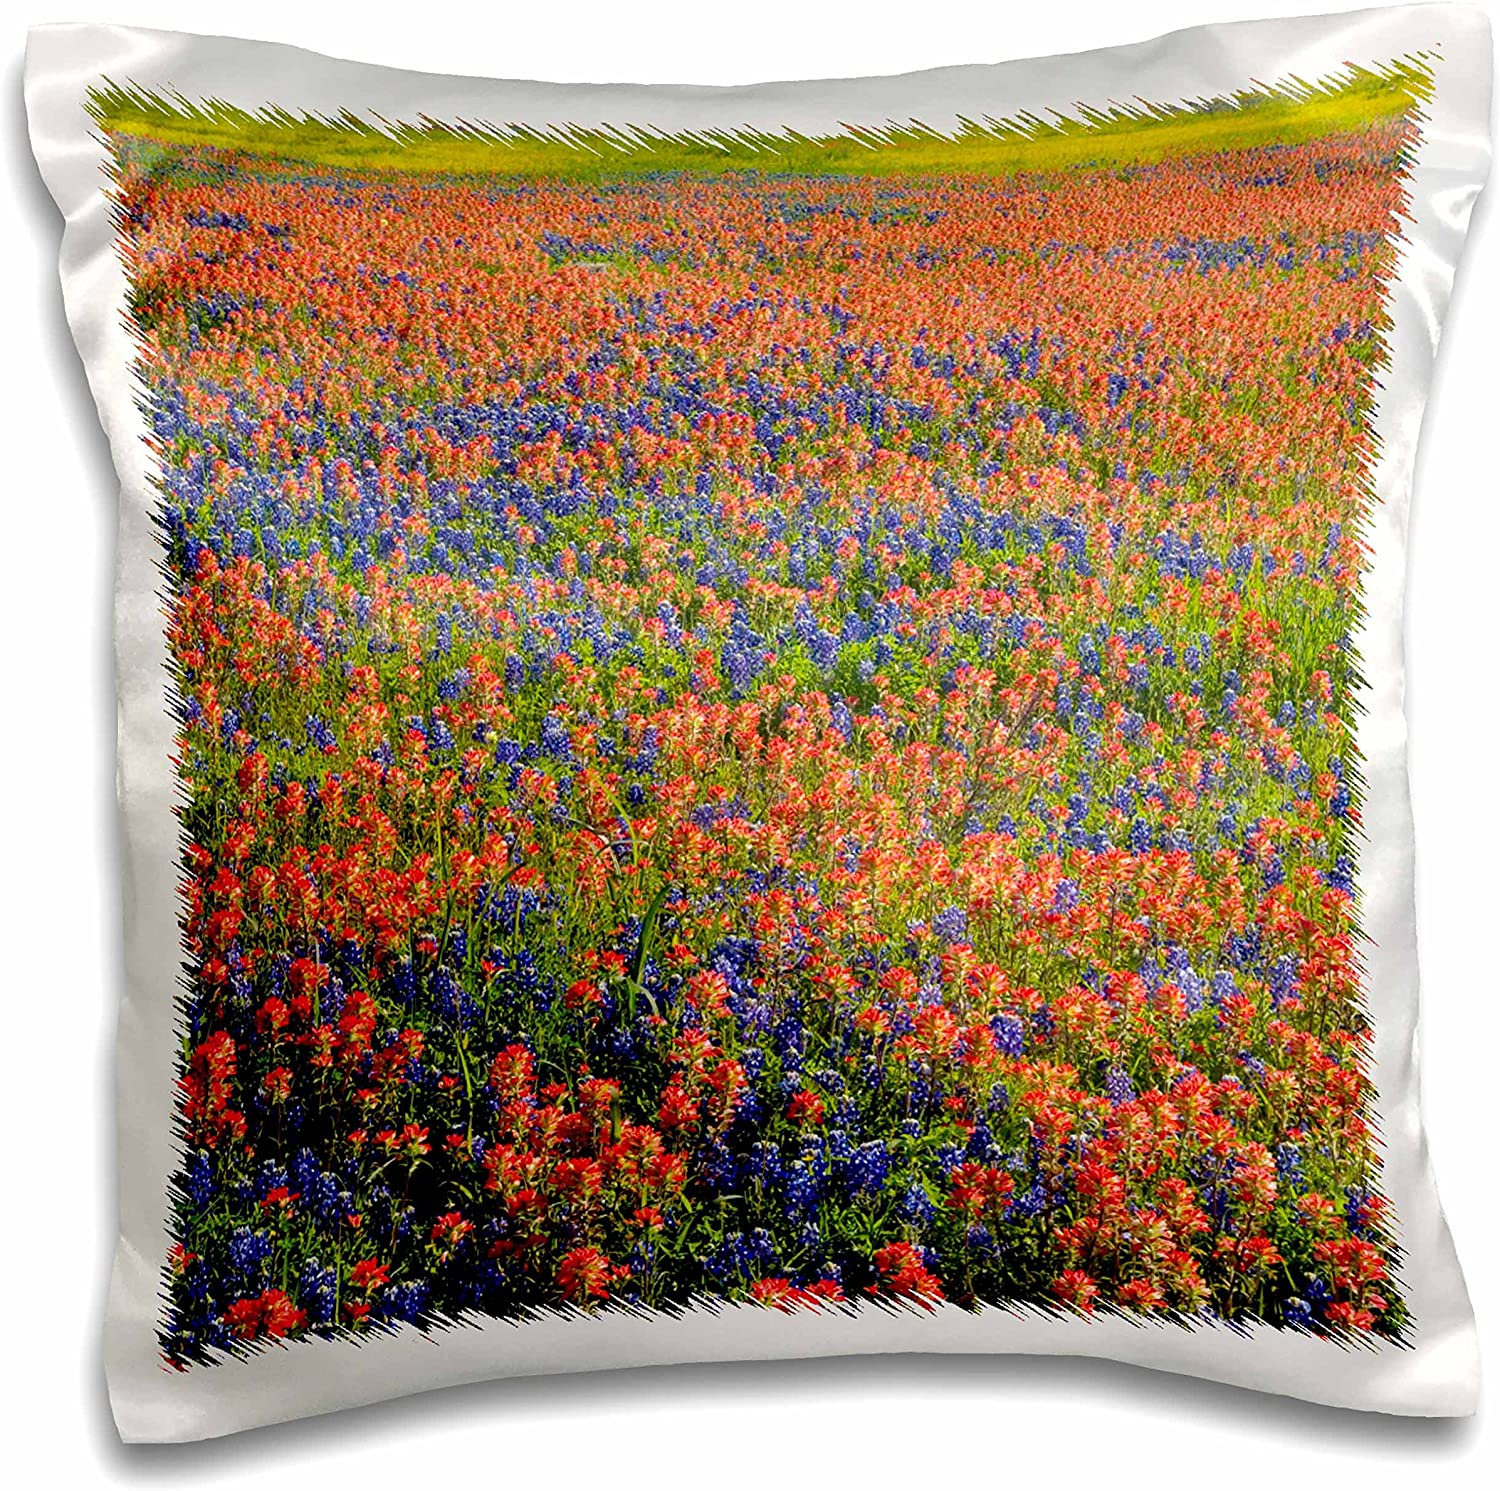 Amazon Com 3drose Blue Bonnets Indian Paintbrush Texas Hill Country Us44 Dgu0187 Darrell Gulin Pillow Case 16 X 16 Home Kitchen